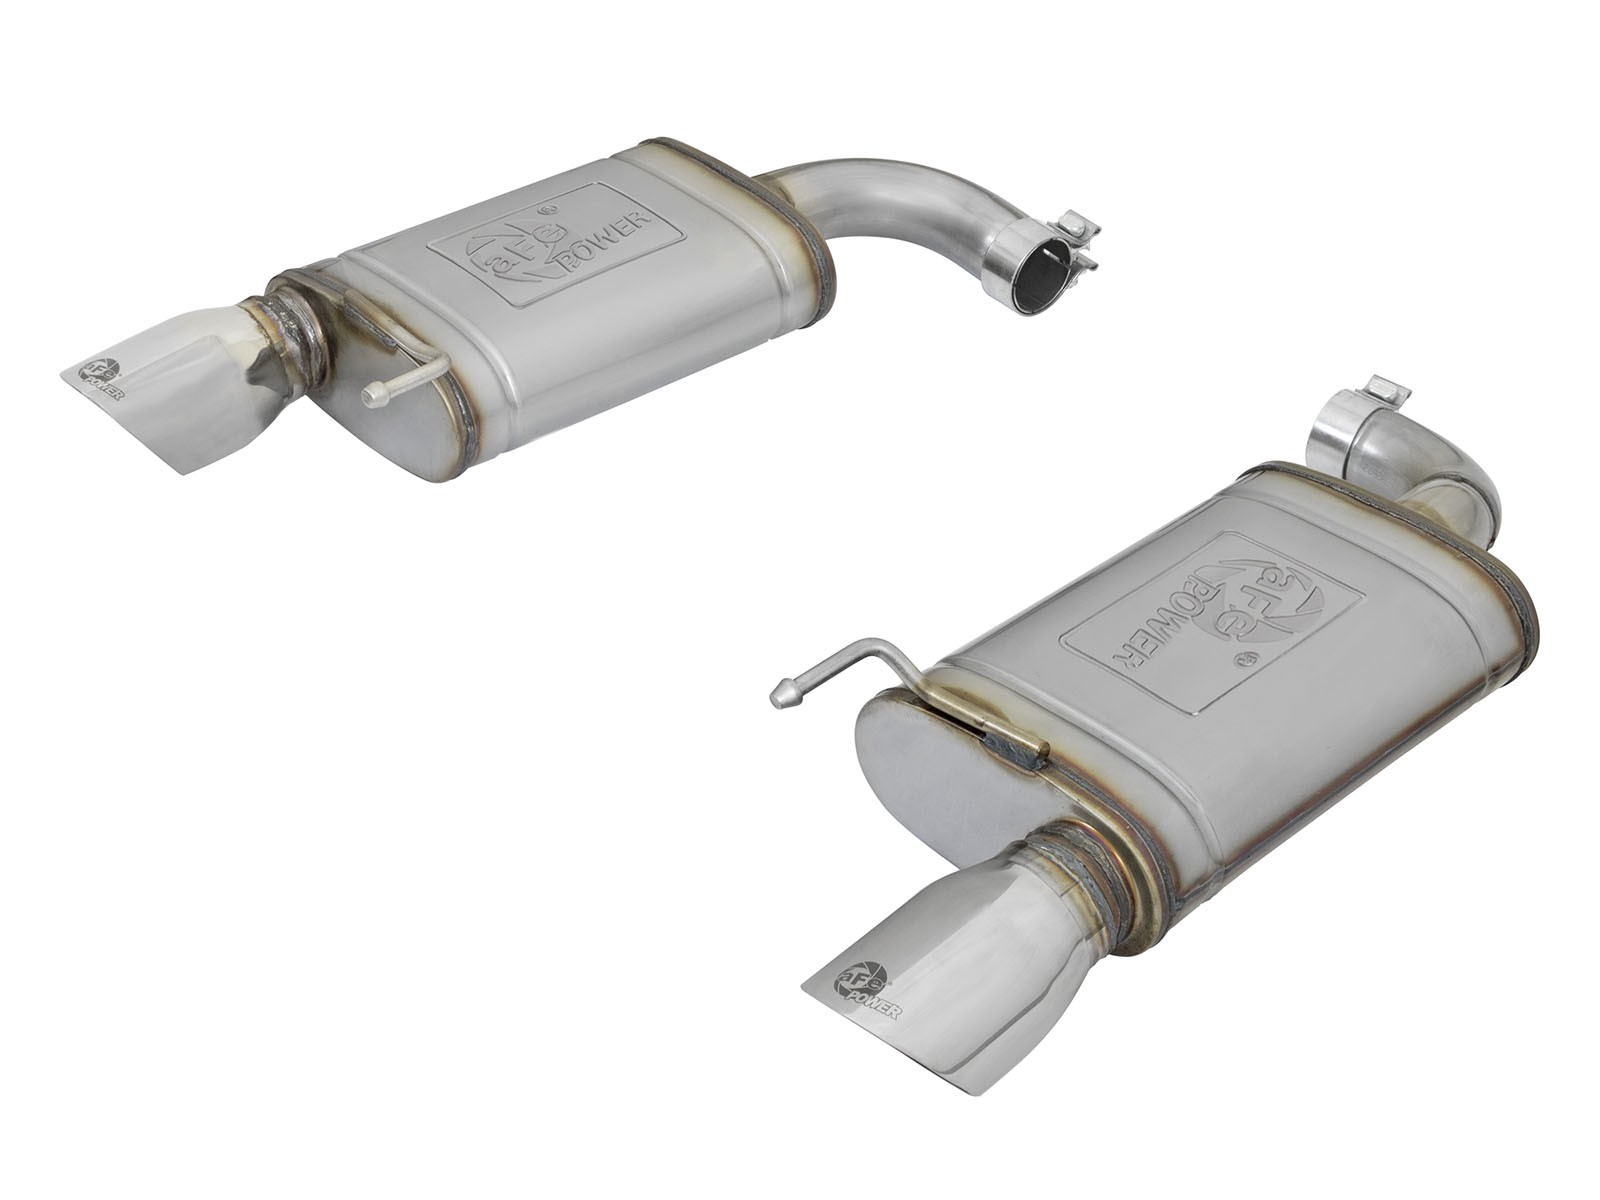 "aFe POWER 49-43085-P MACH Force-Xp 2-1/2"" 409 Stainless Steel Axle-Back Exhaust System"